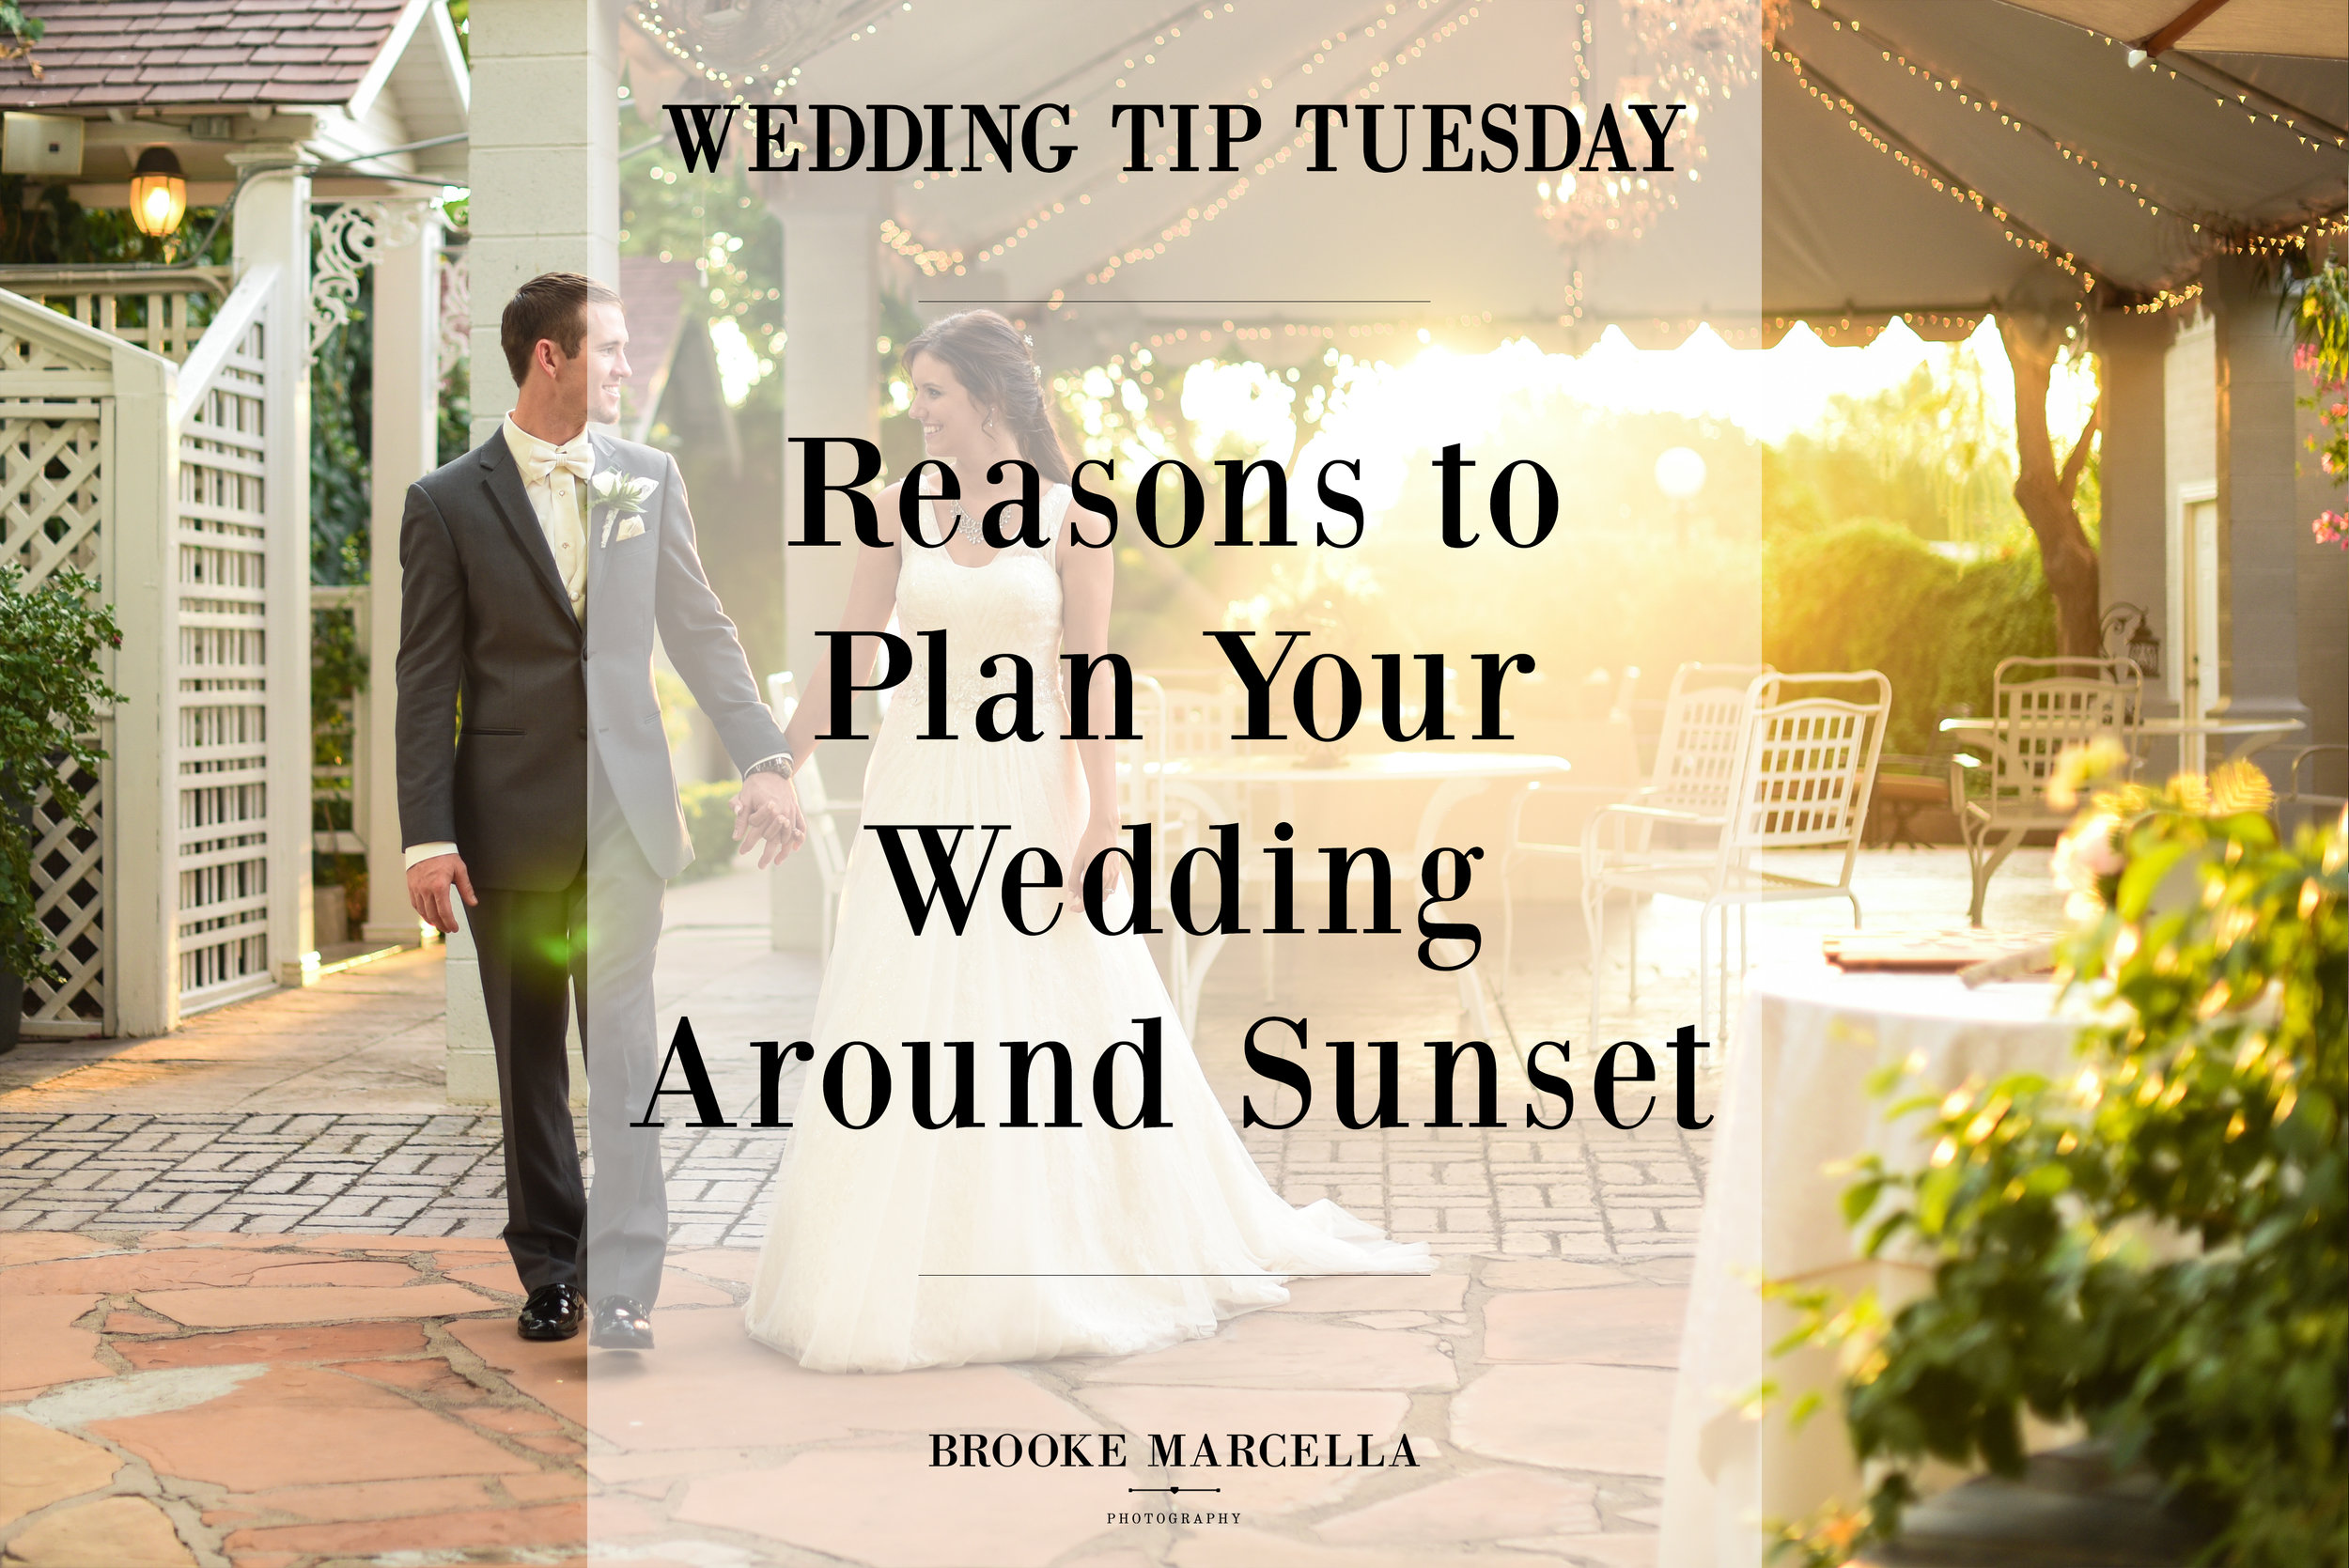 Reasons to plan your wedding around the sunset